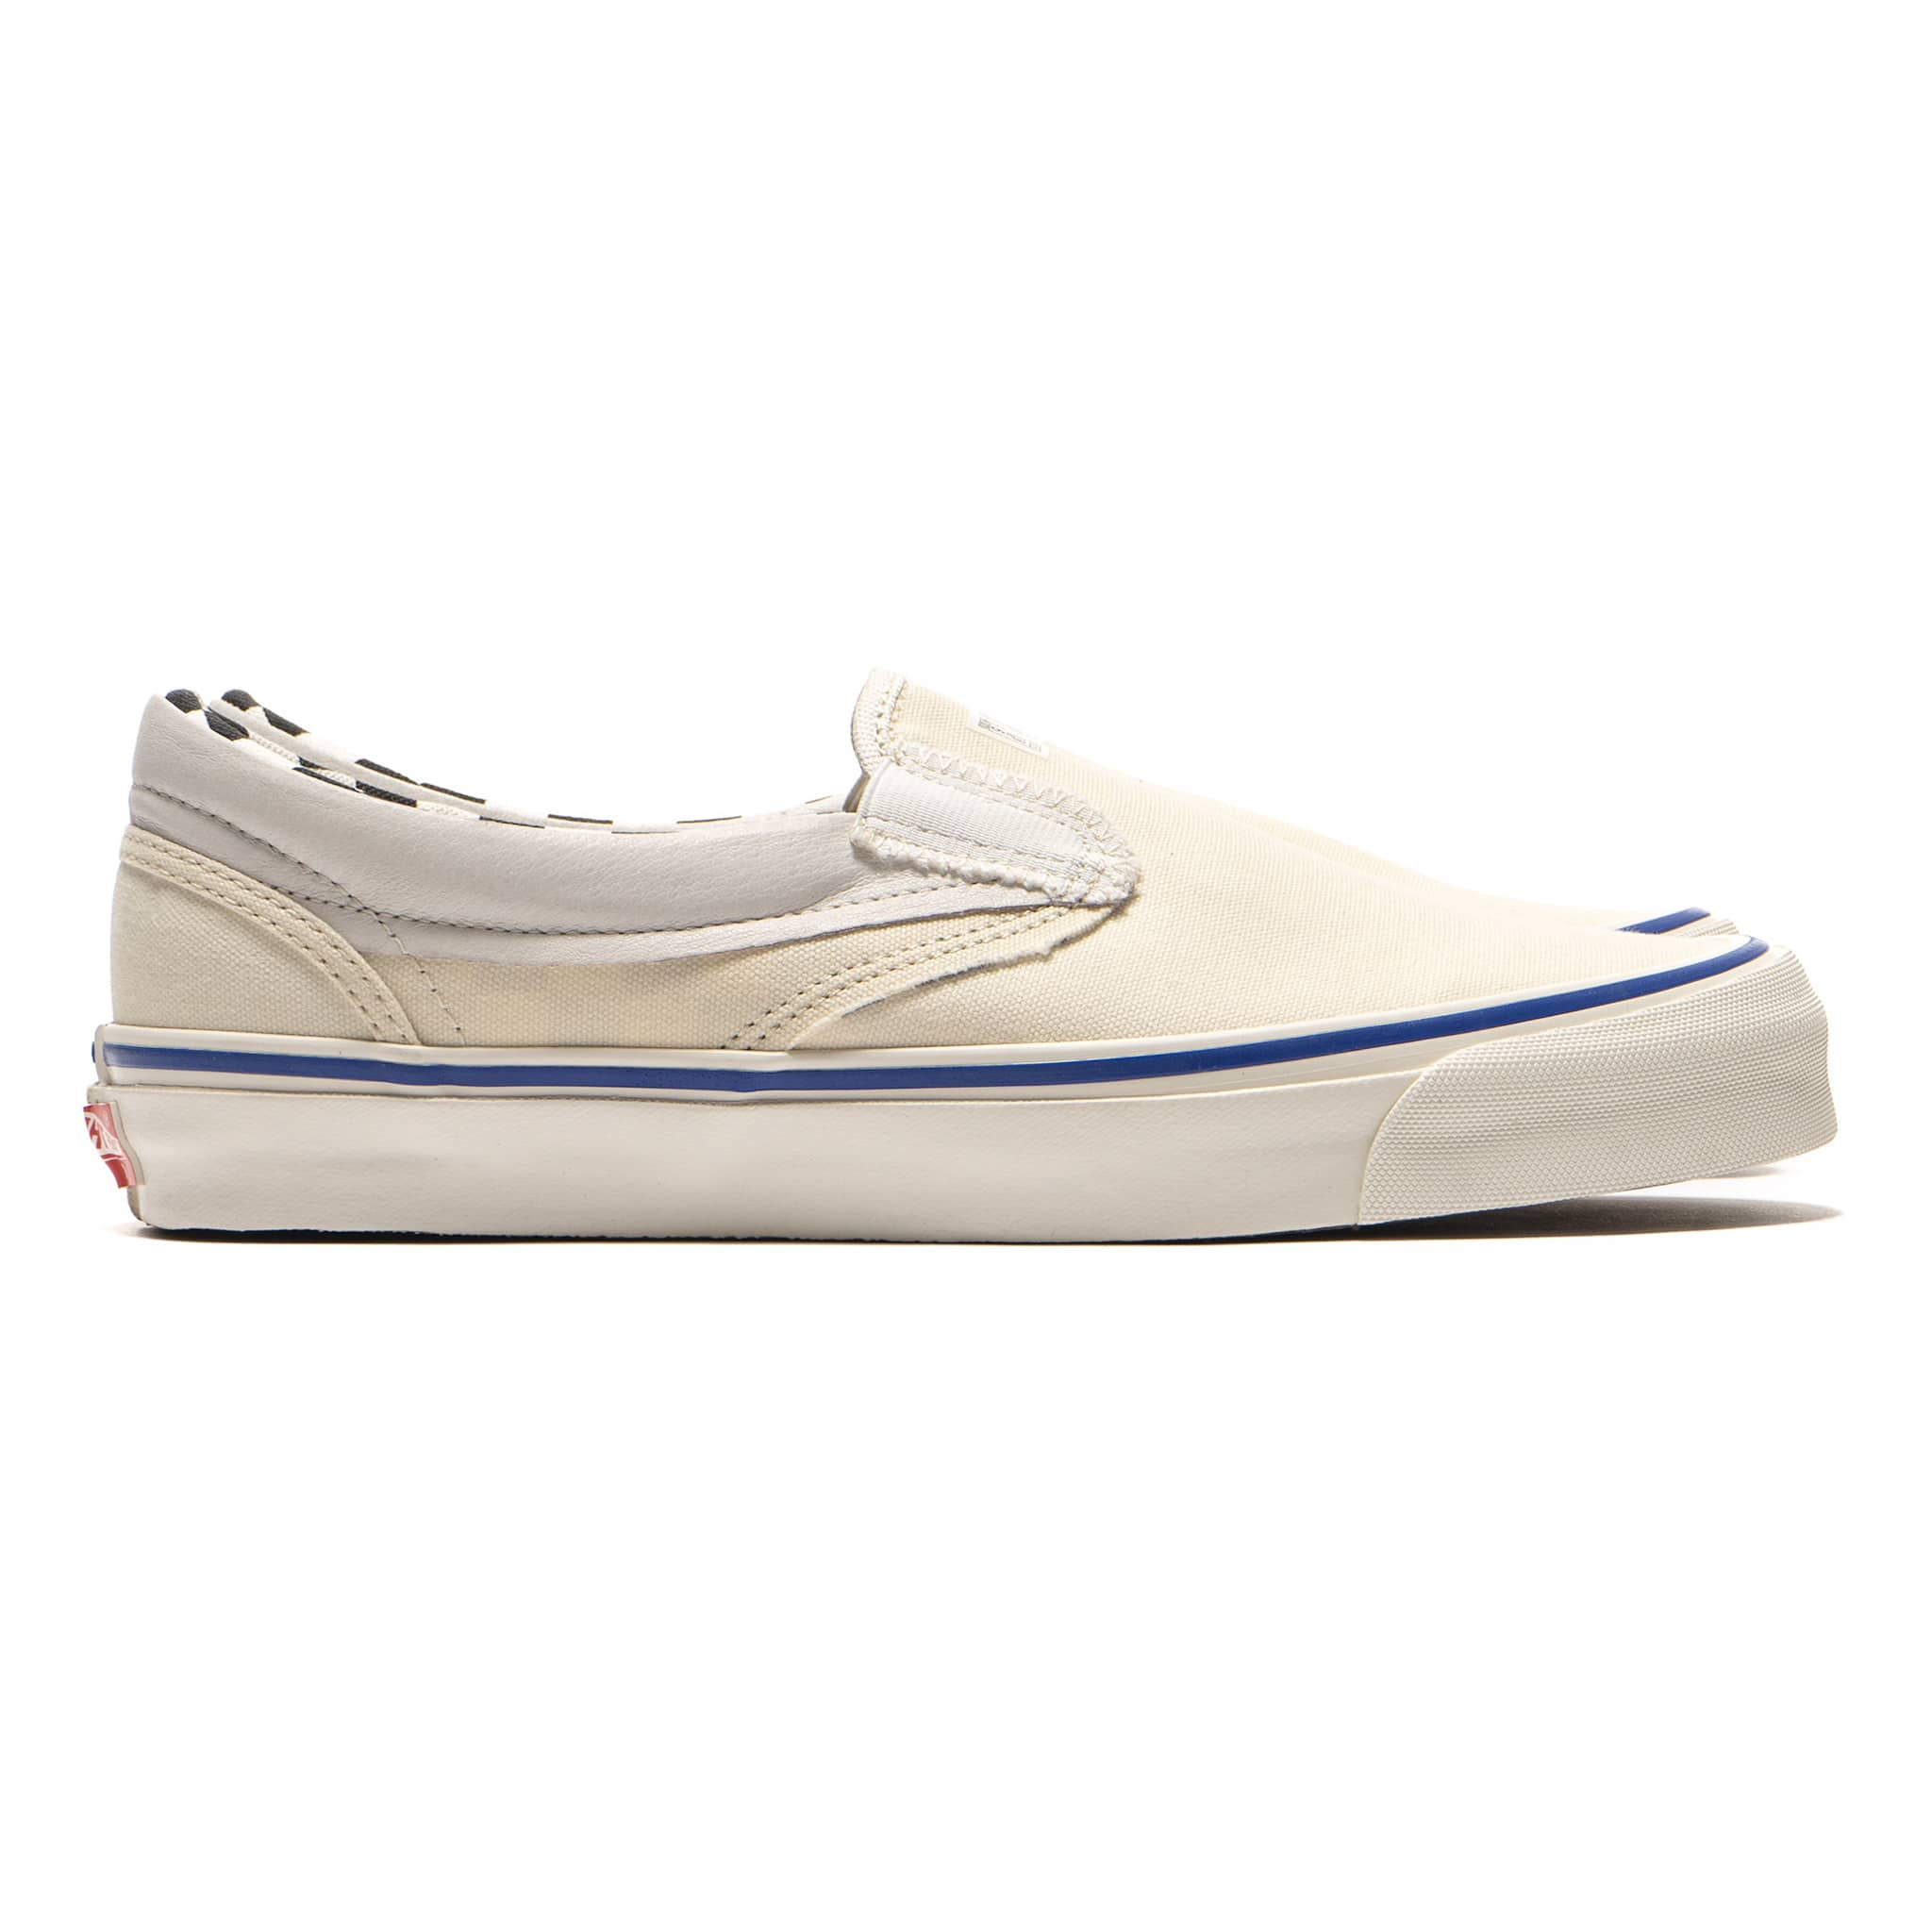 bf00721944 ... panelled SK8-Hi and Slip-On silhouettes